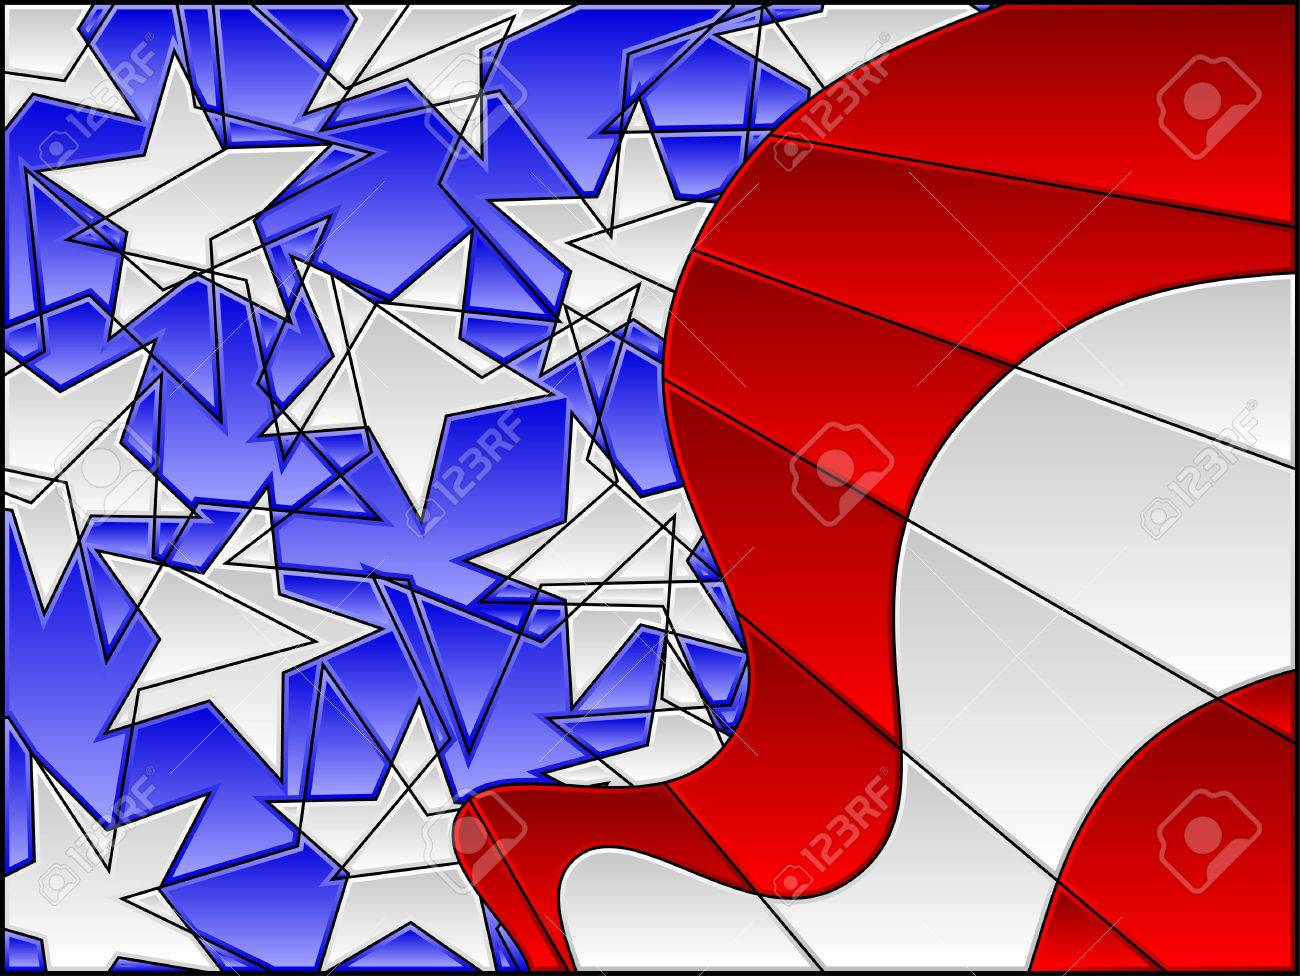 Stained Glass American Flag.Stained Glass American Flag